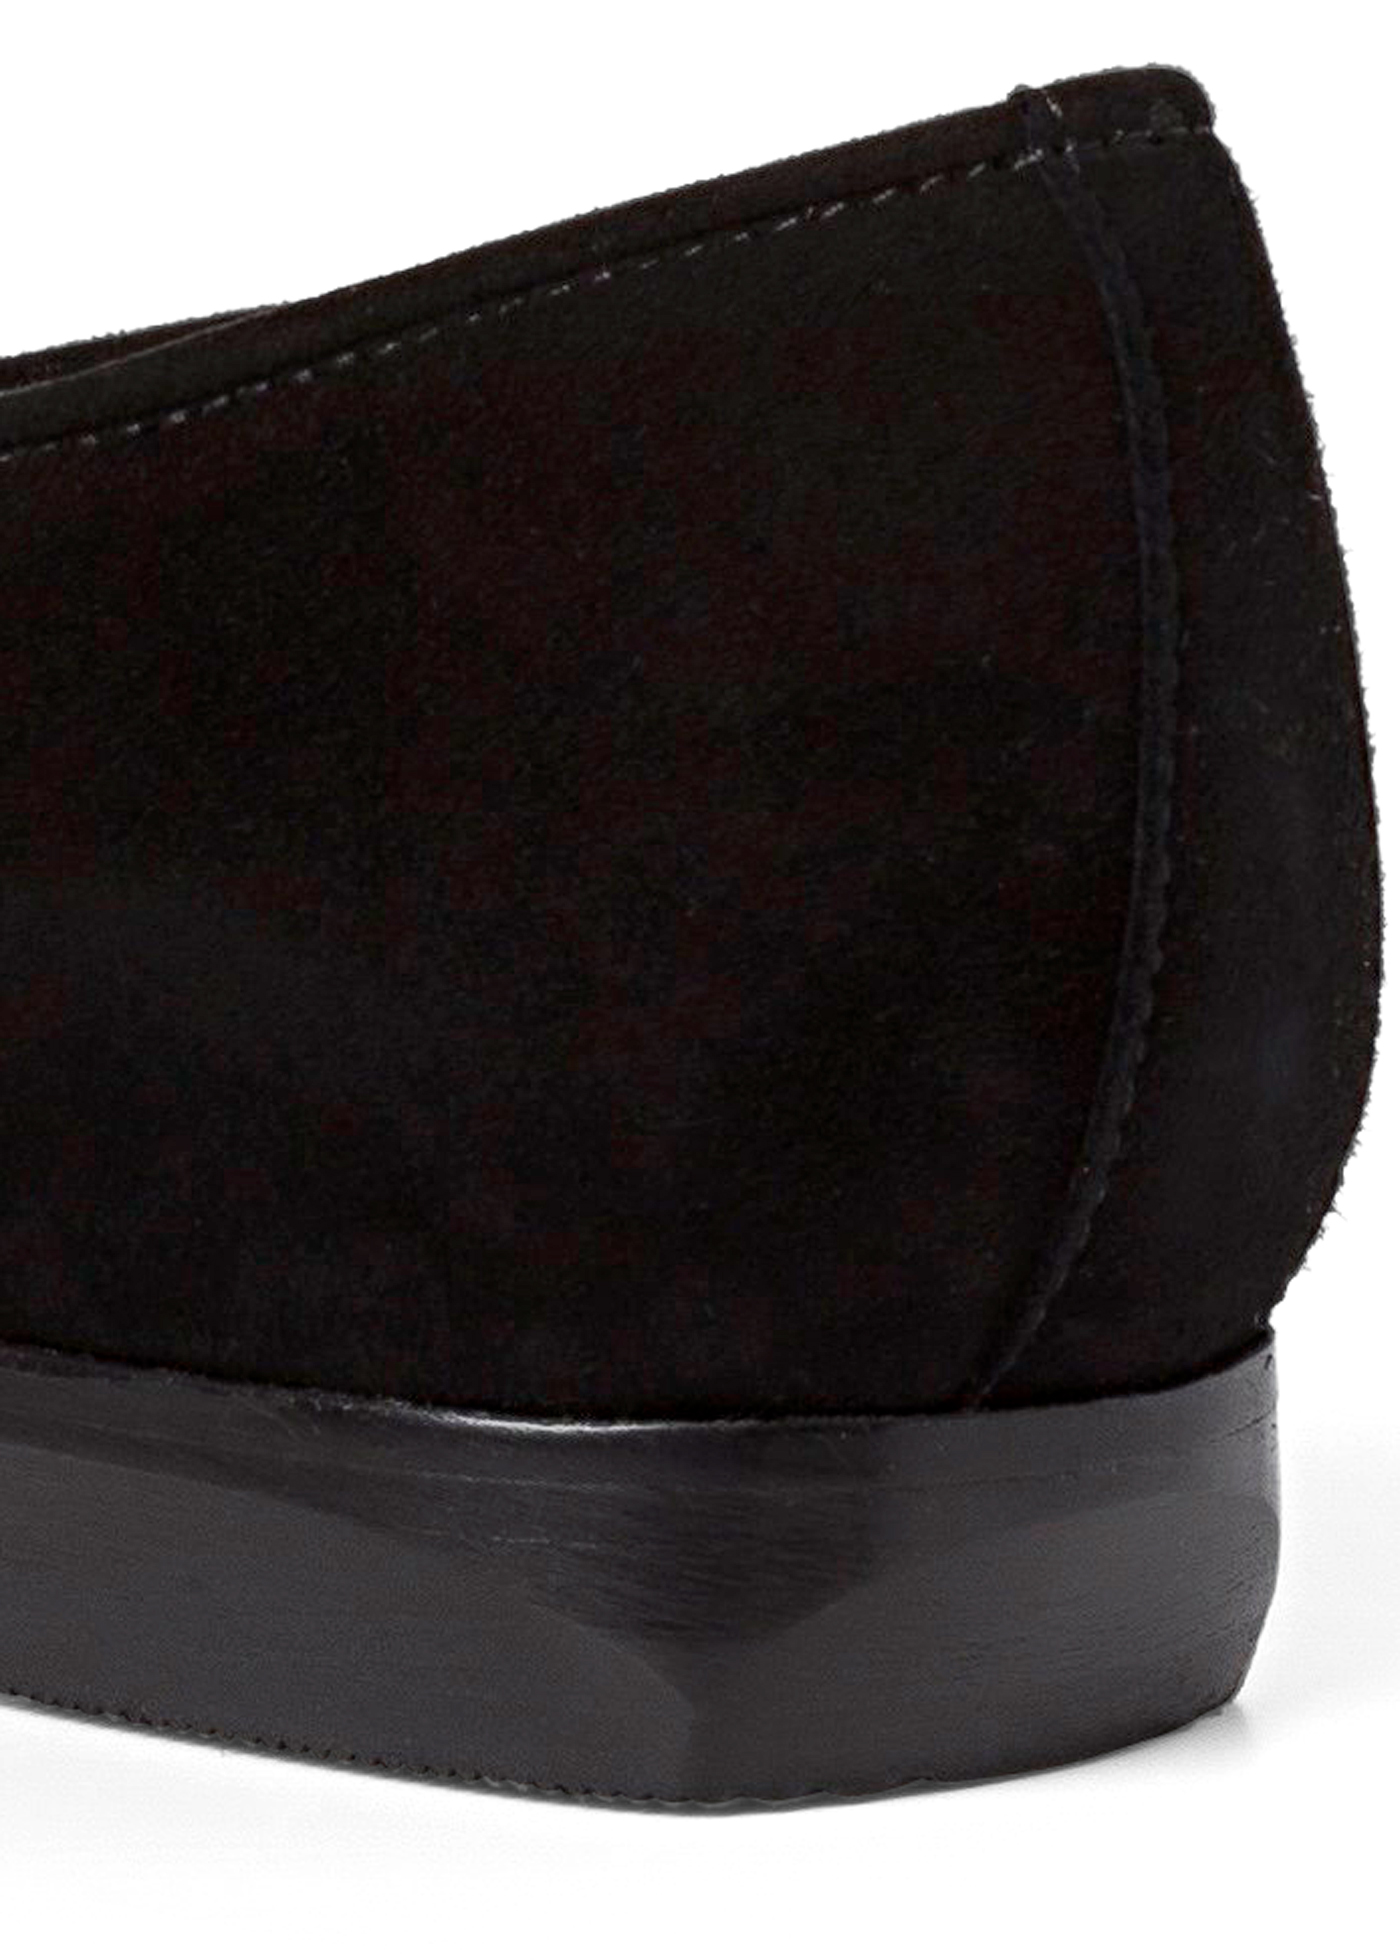 LOAFER WITH METALLIC DETAIL image number 3